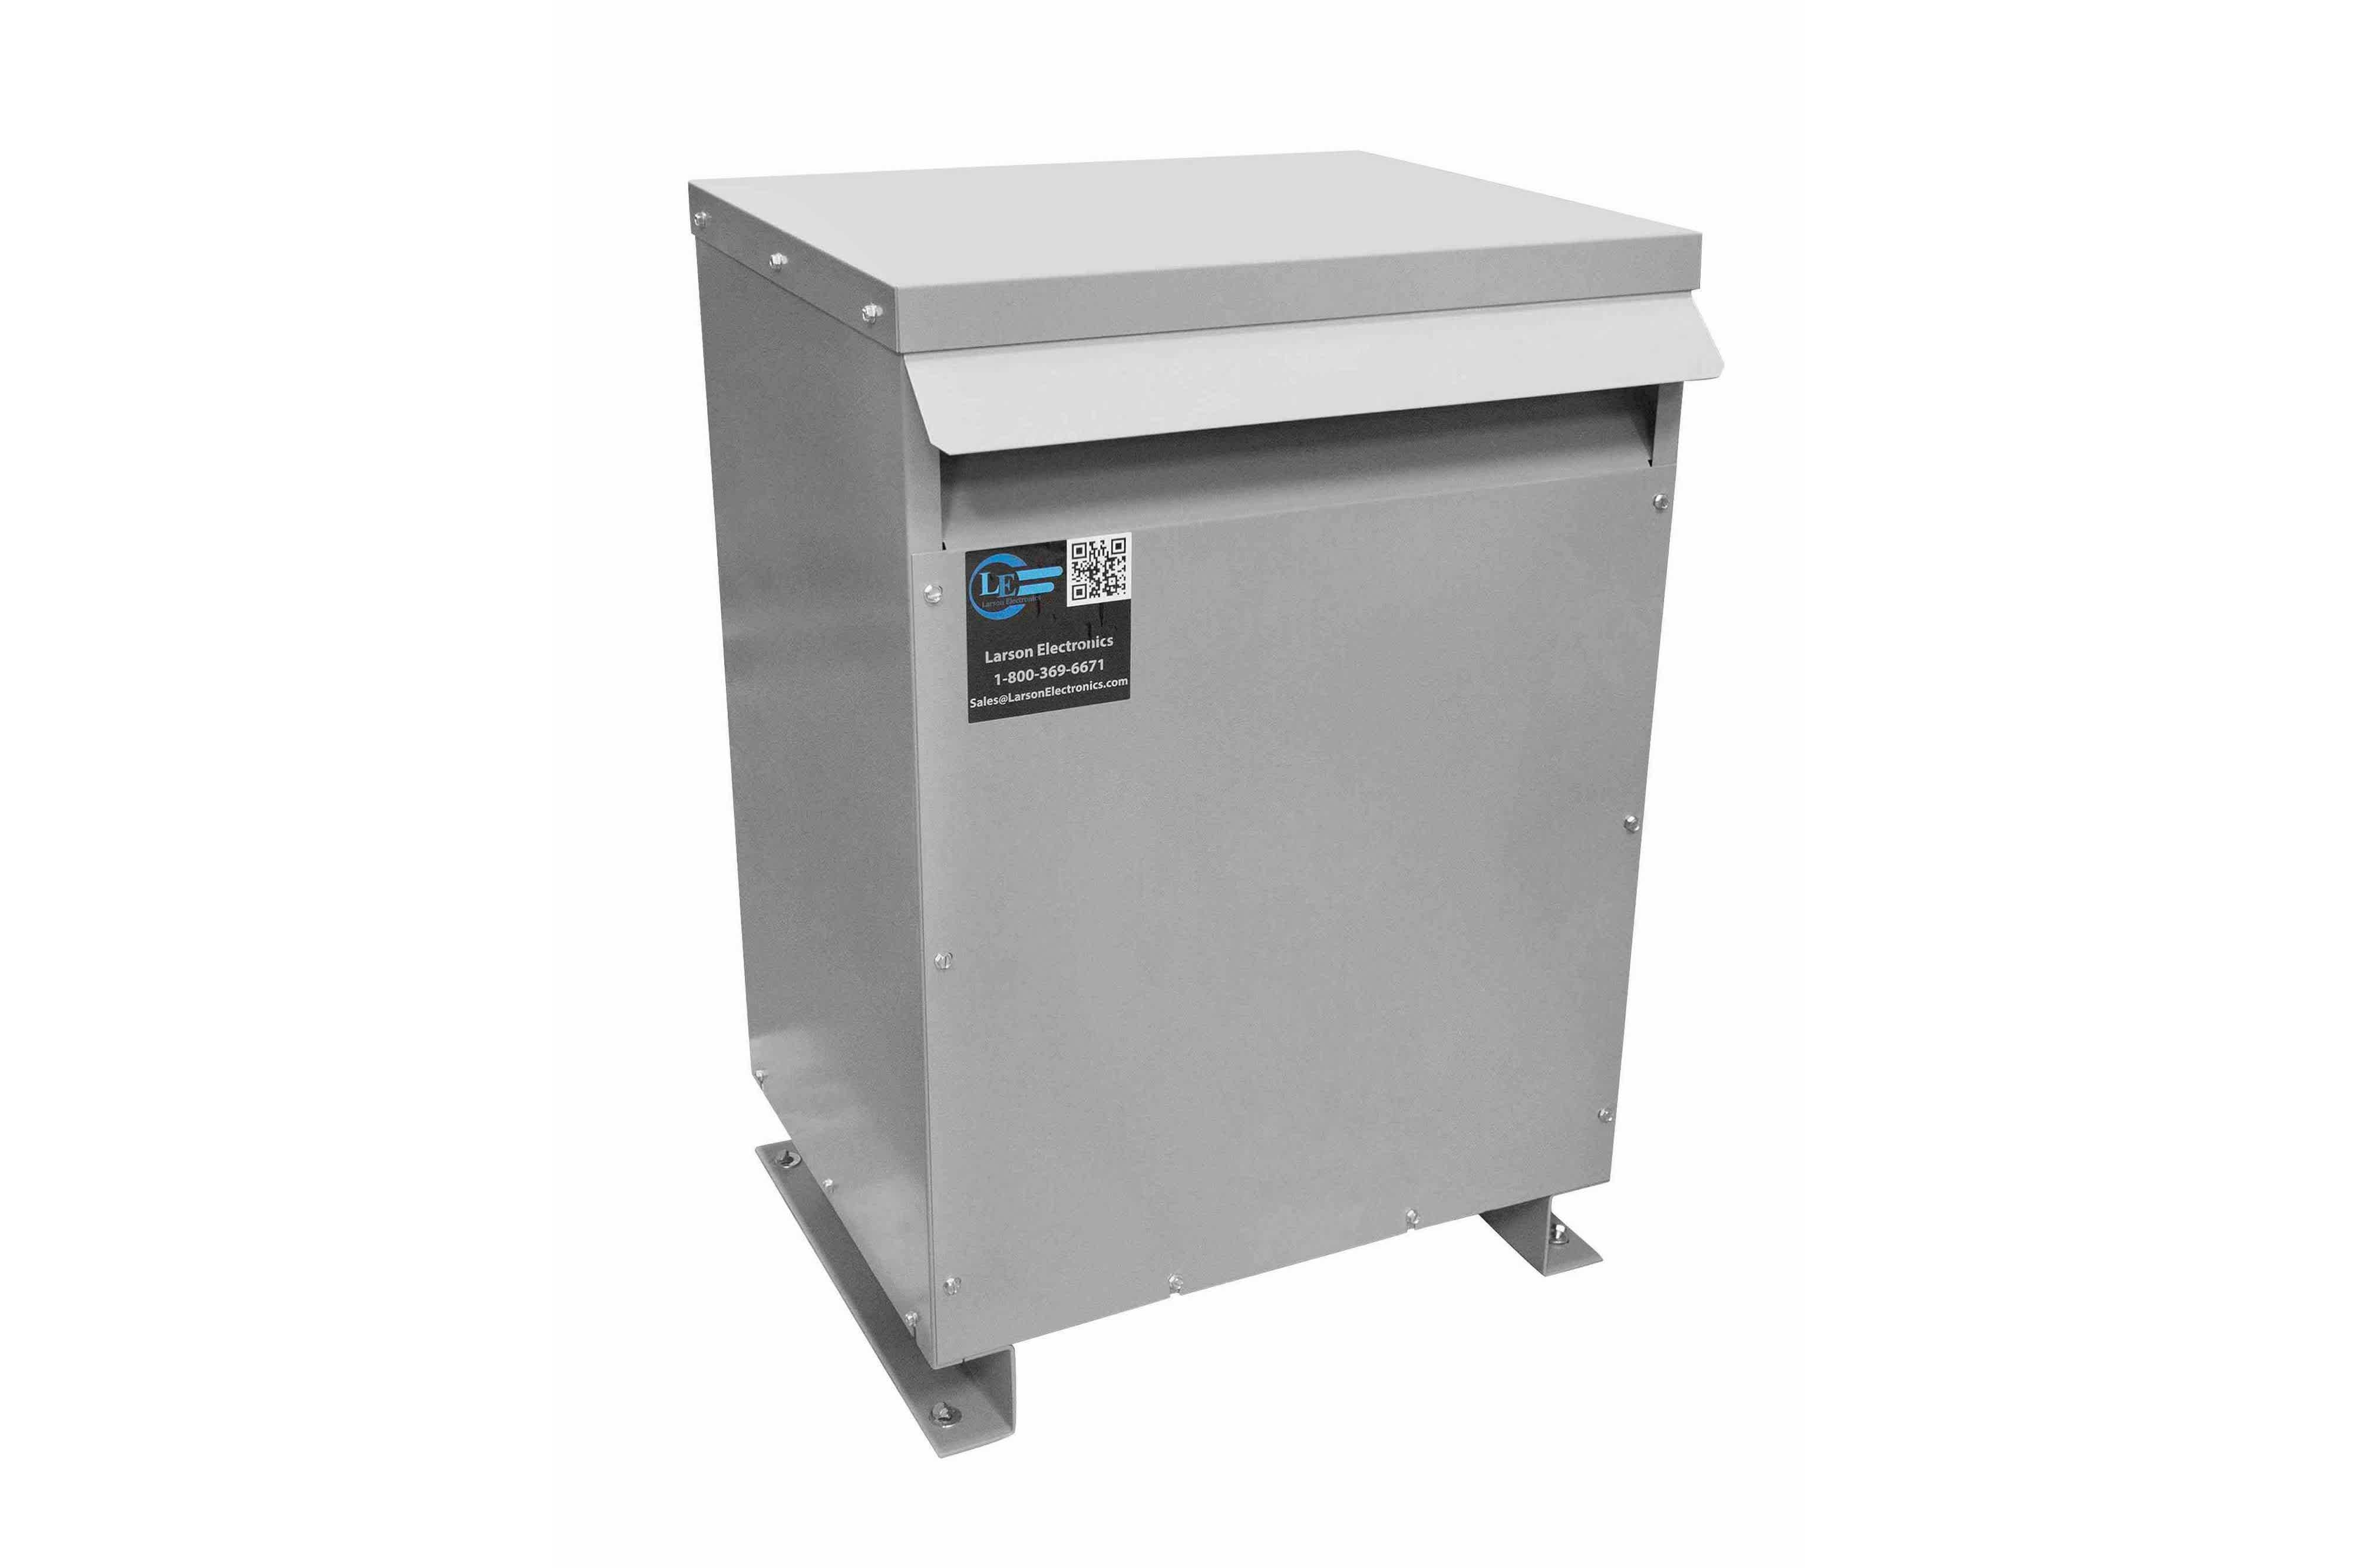 38 kVA 3PH Isolation Transformer, 460V Wye Primary, 600V Delta Secondary, N3R, Ventilated, 60 Hz